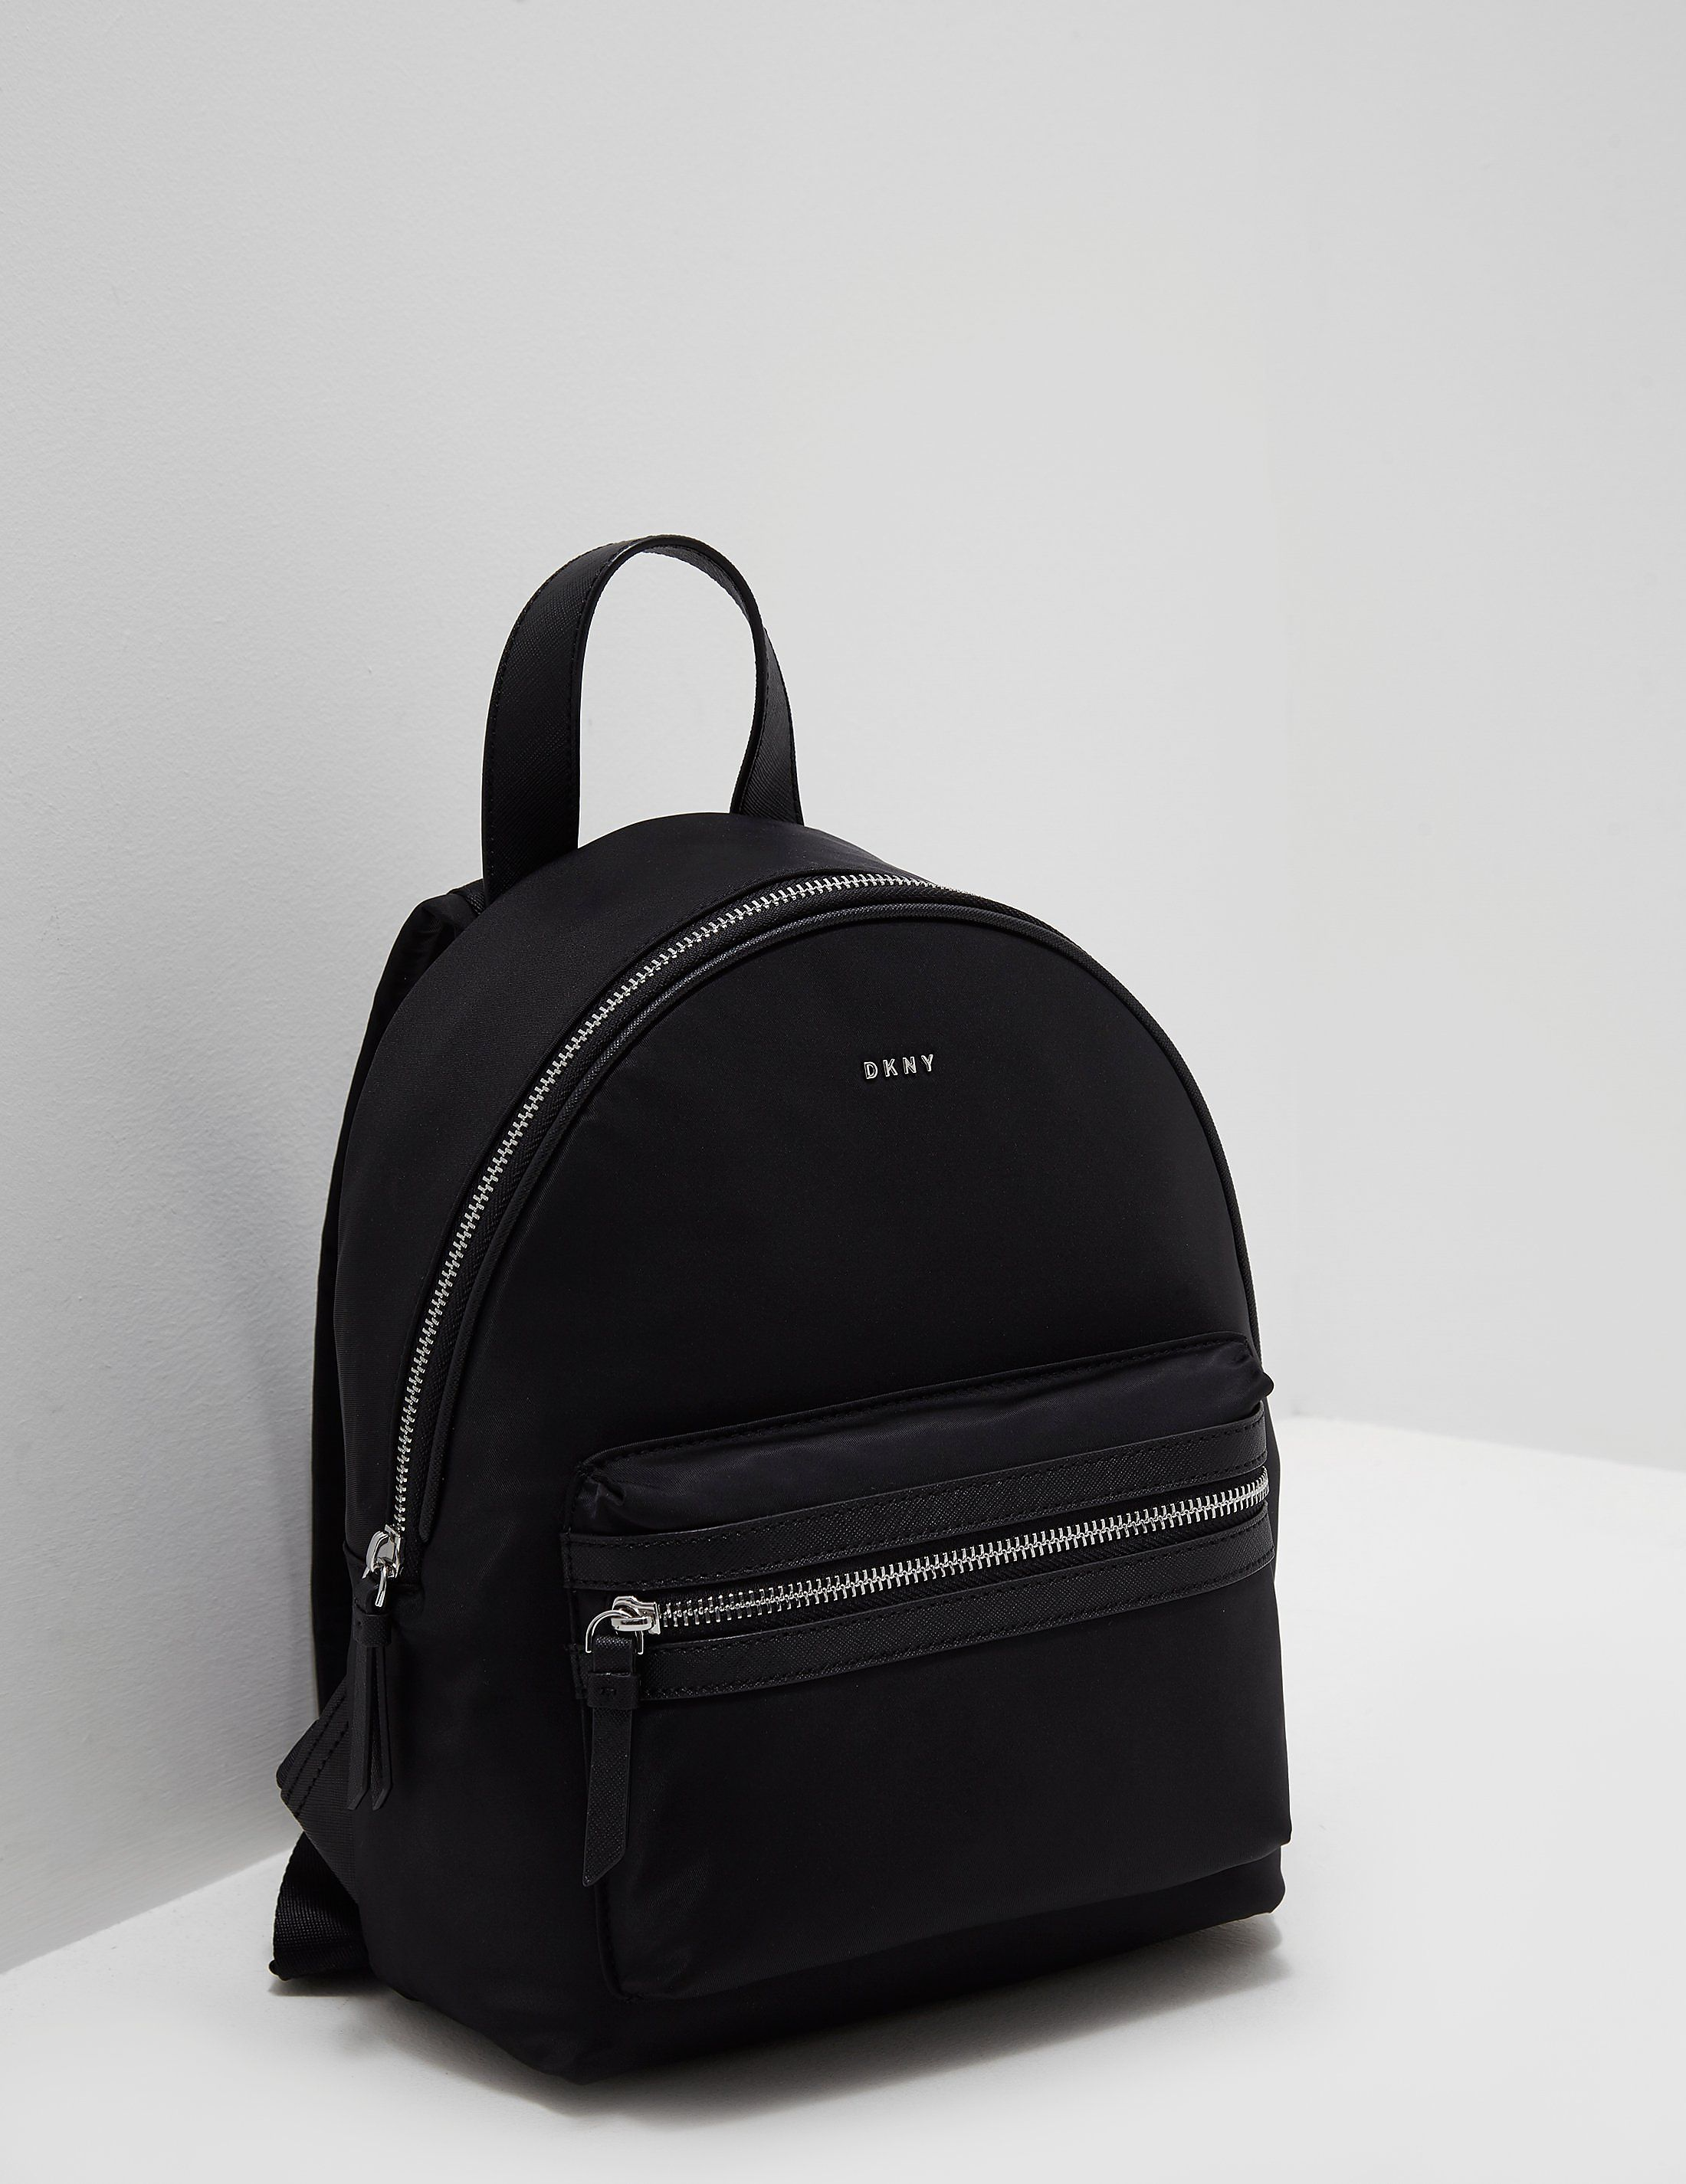 Dkny Nylon Backpack by Tessuti